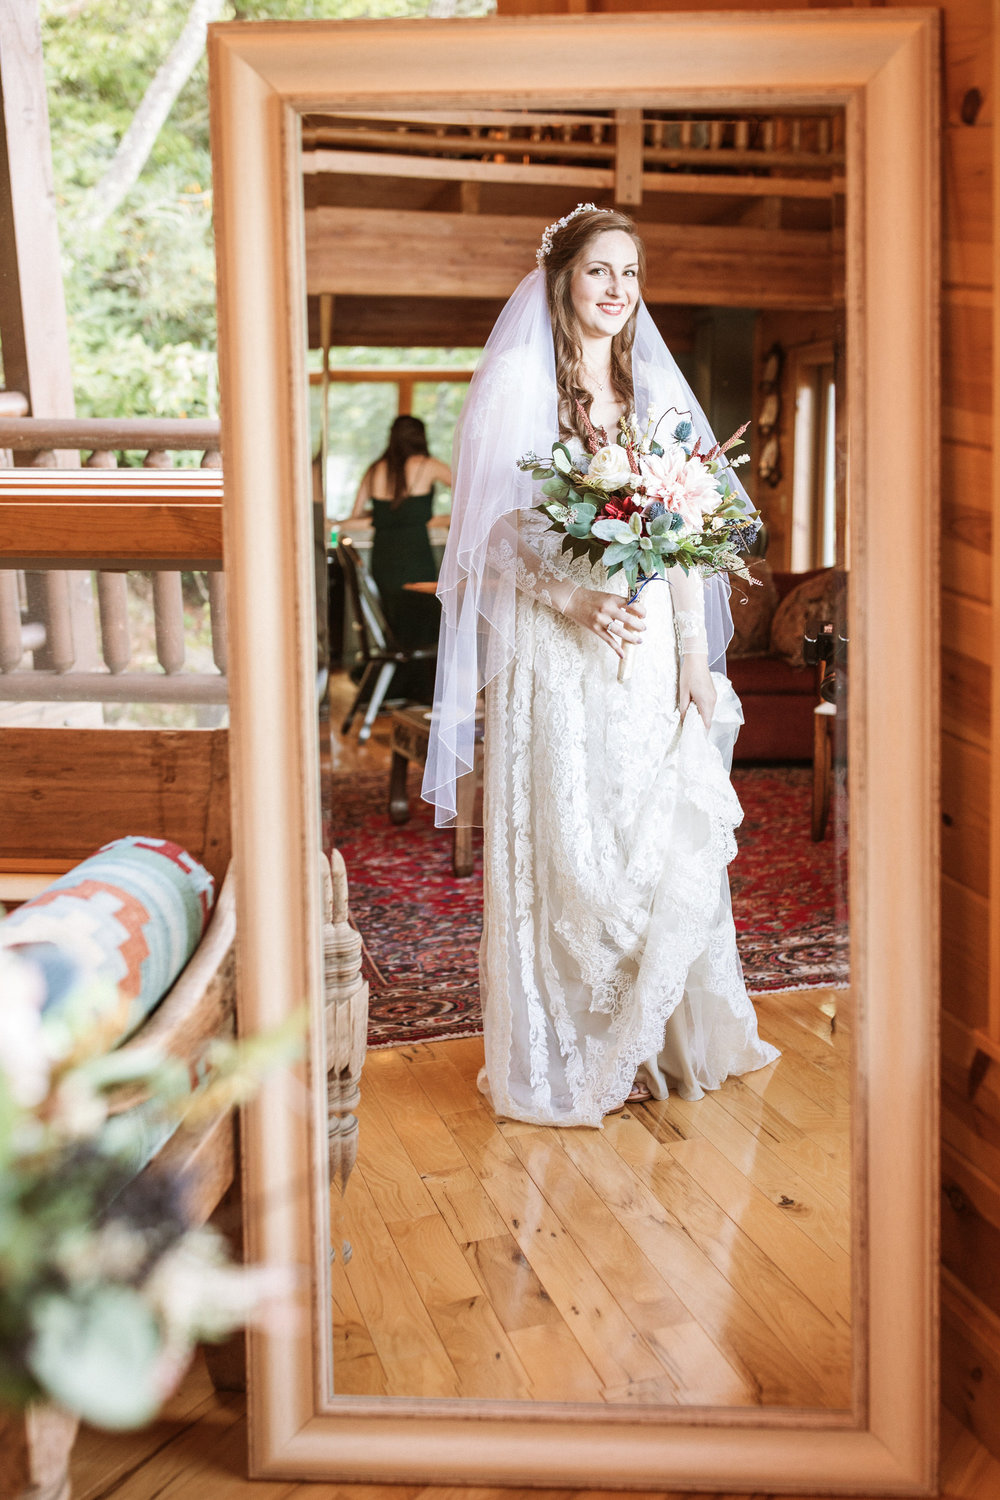 1. Bride's morning- Cole + Rachel's Great Smoky Mountain National Park Elopement-180.jpg